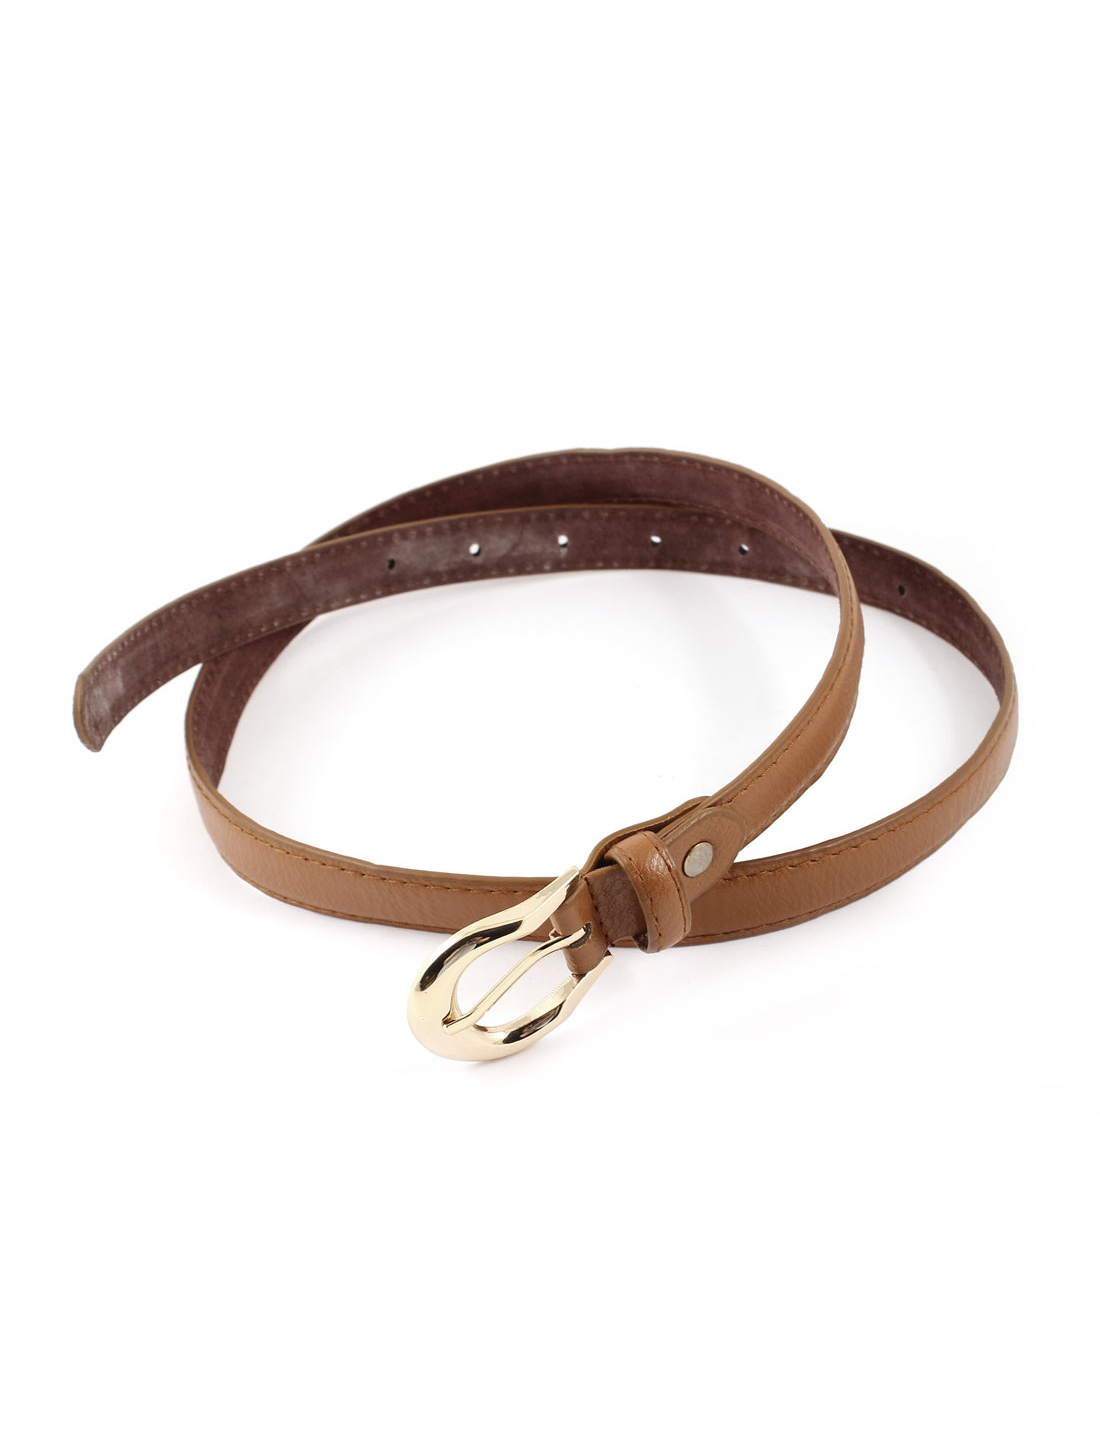 Women Single Pin Buckle Faux Leather Waist Band Belt Camel Color